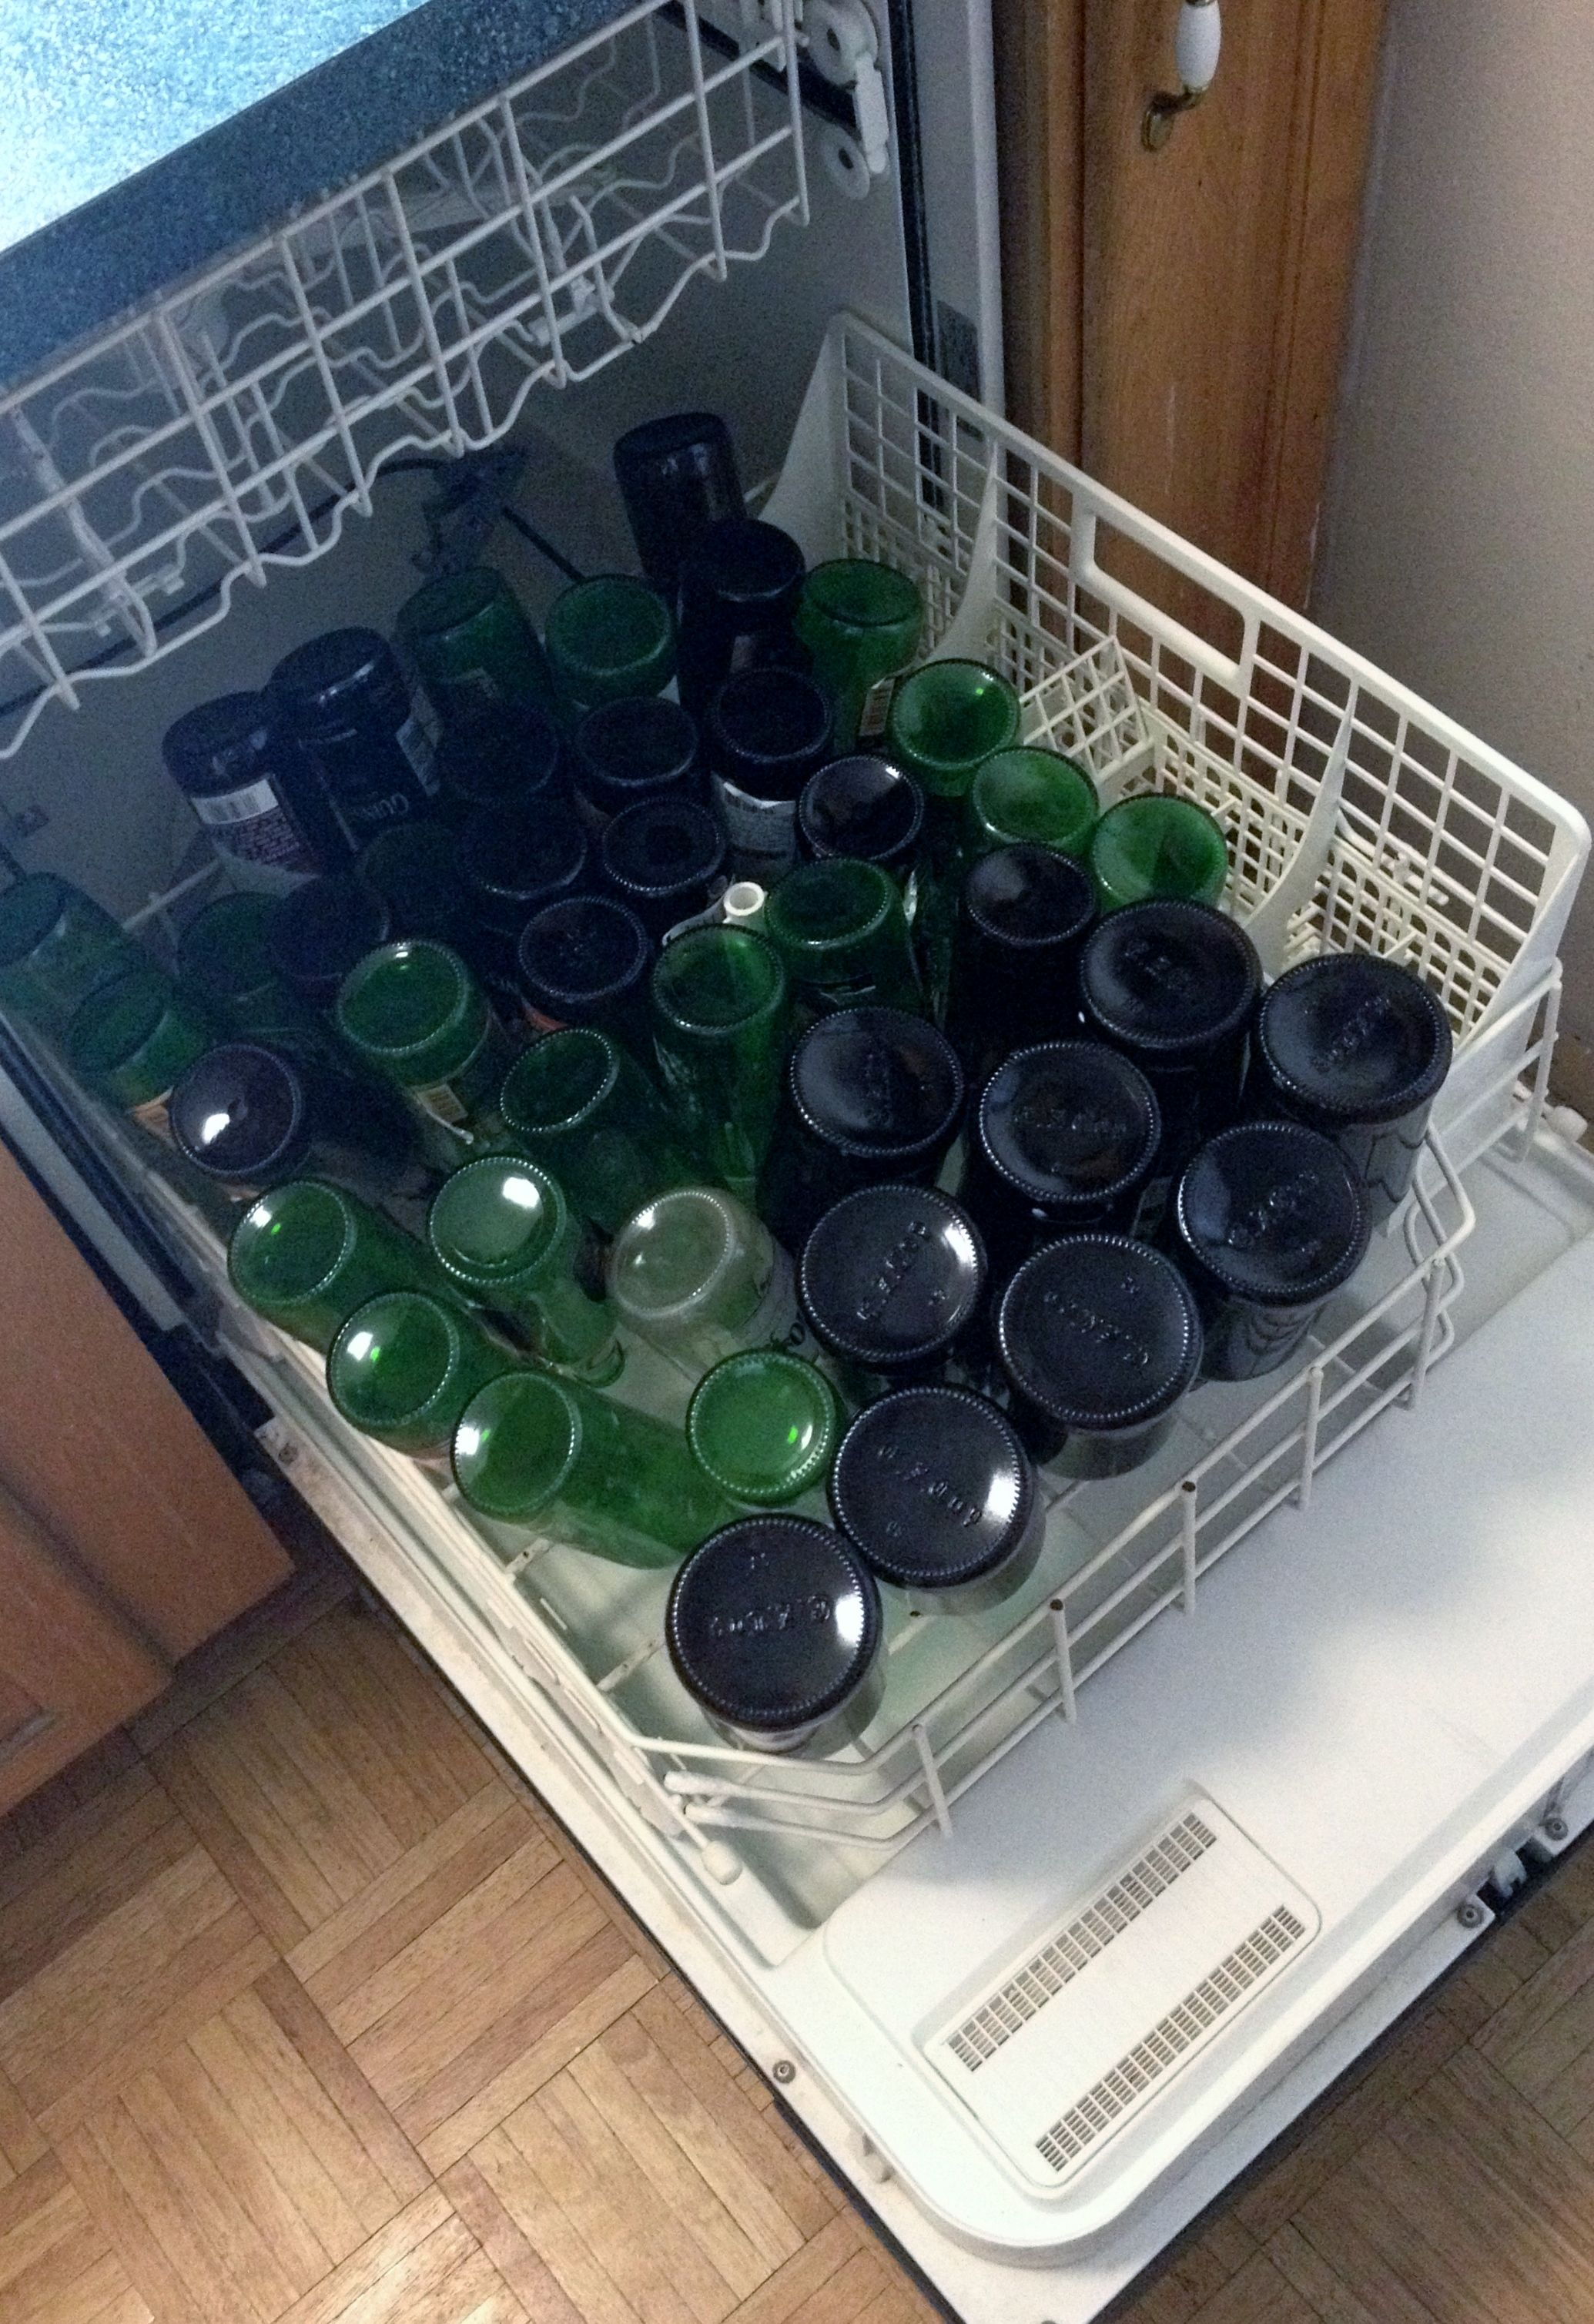 Beginners Homebrew tip: Don't spend a half day sanitizing each bottle. Run them through your dishwasher with just a touch of Starsan.